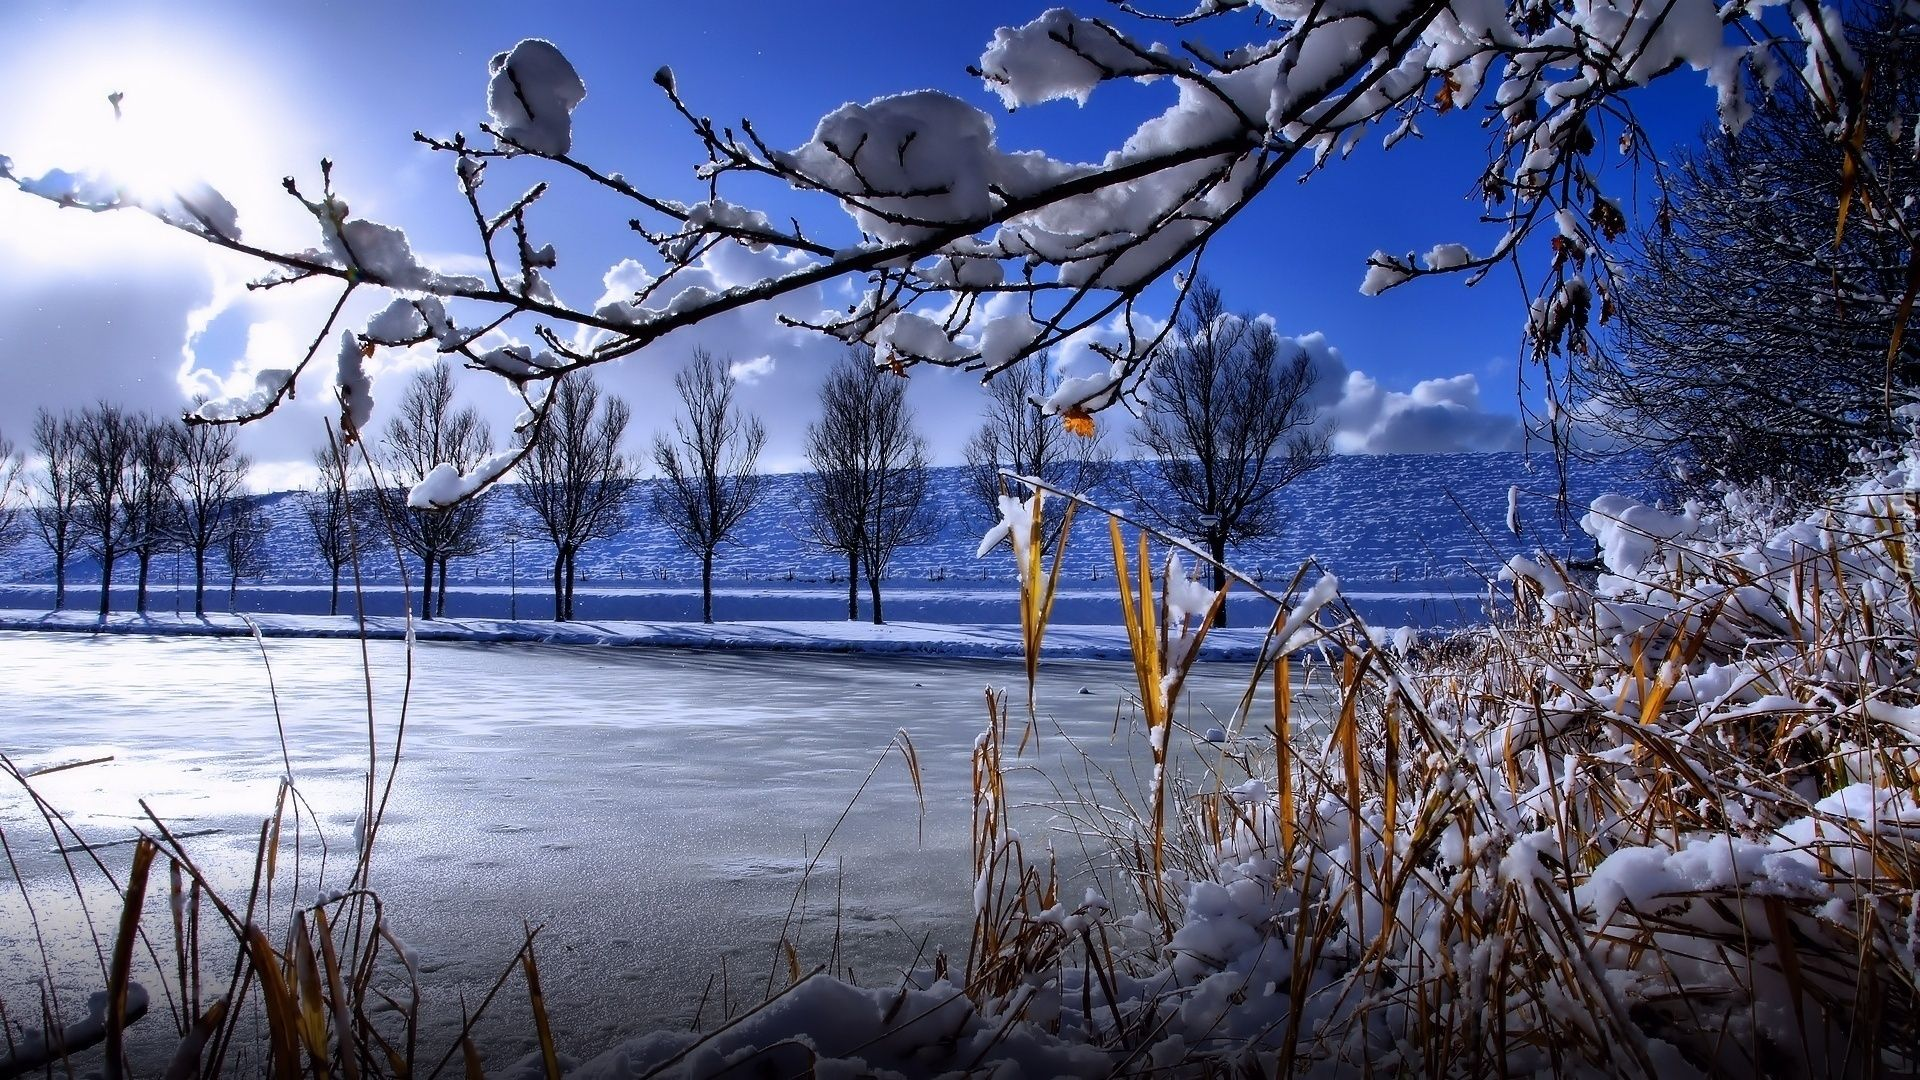 Winter Snow Scenes Wallpaper Theme